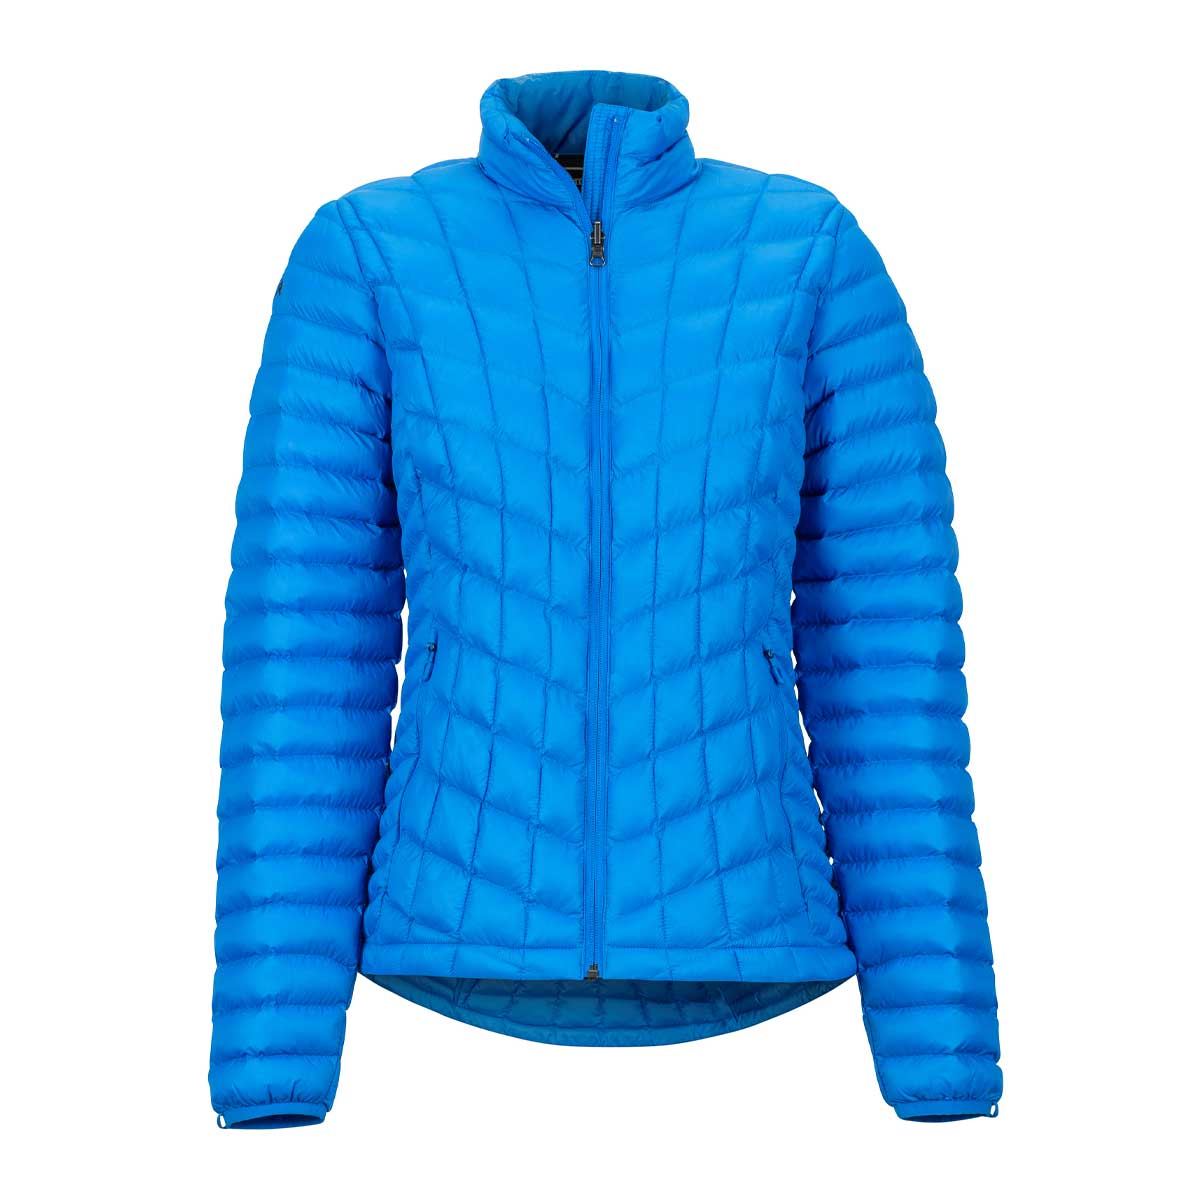 Marmot Women's Featherless Jacket in Clear Blue